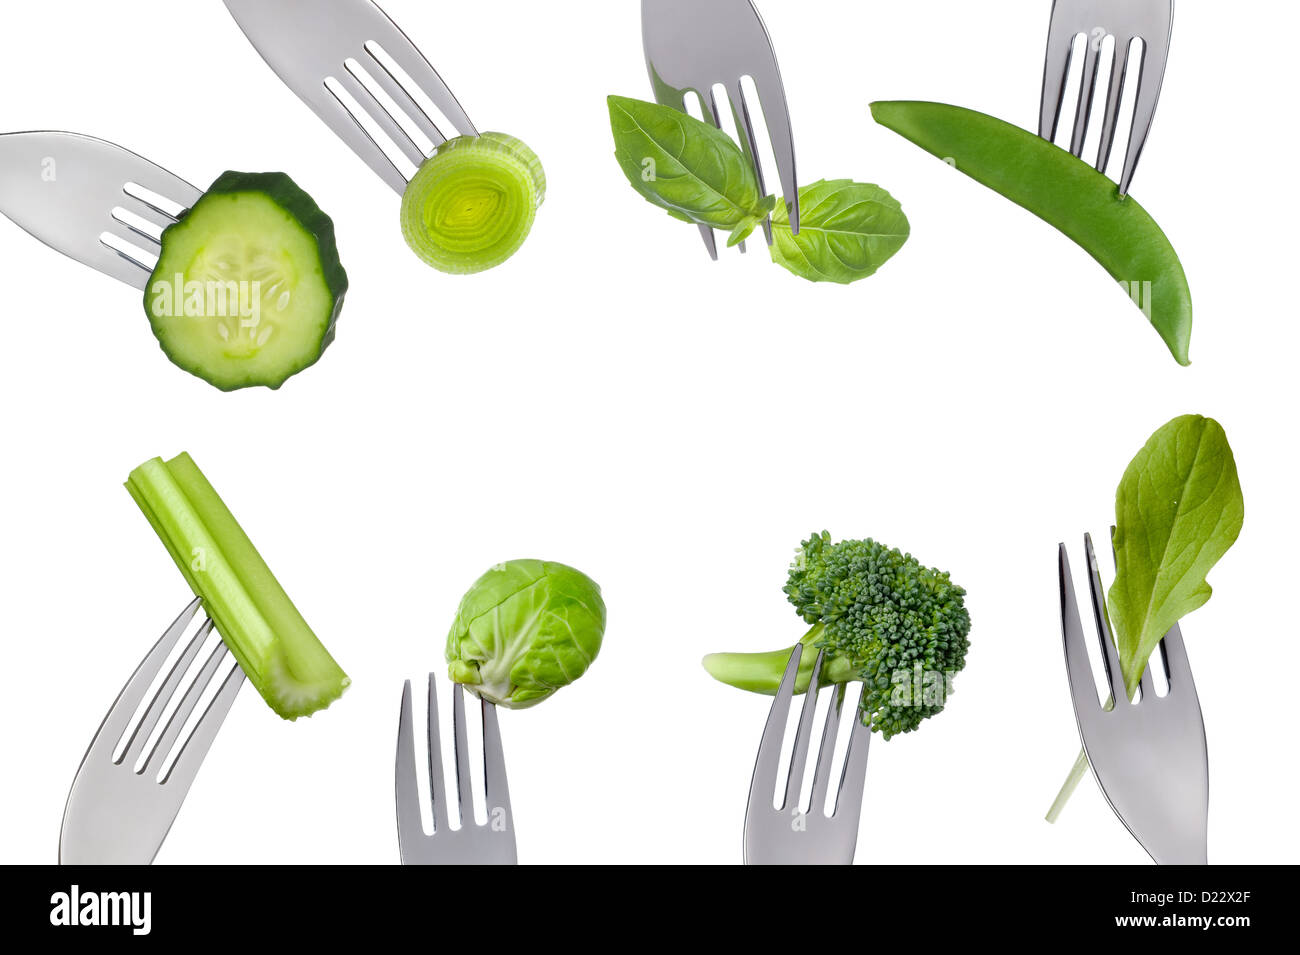 fresh green healthy vegetables on forks isolated against white background forming a border with copy space - Stock Image